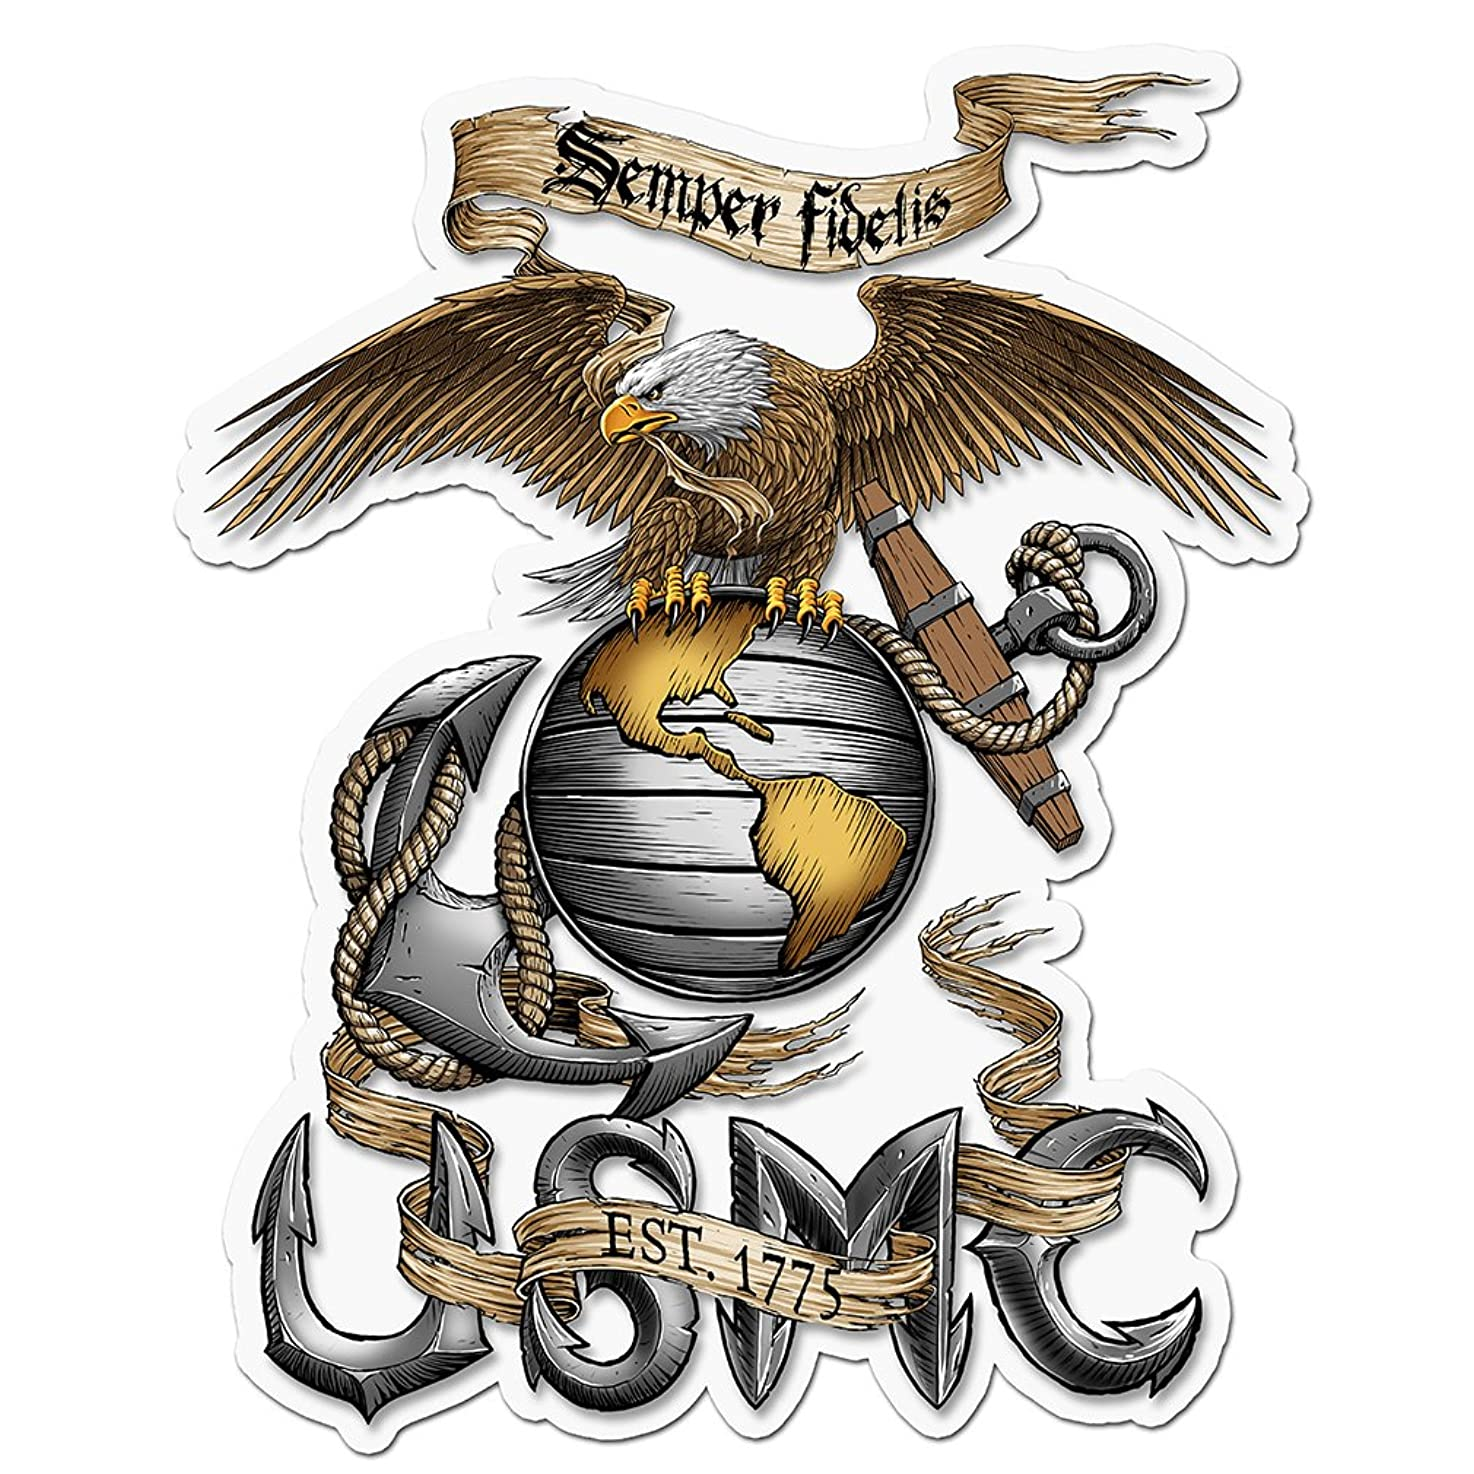 Collectible Marine Corps Decals (4in,2pack), Share your Appreciation and Support with our Vinyl Eagle USMC Stickers for your Home, Car, Cases and more, Souvenir Gifts for Marine Corps